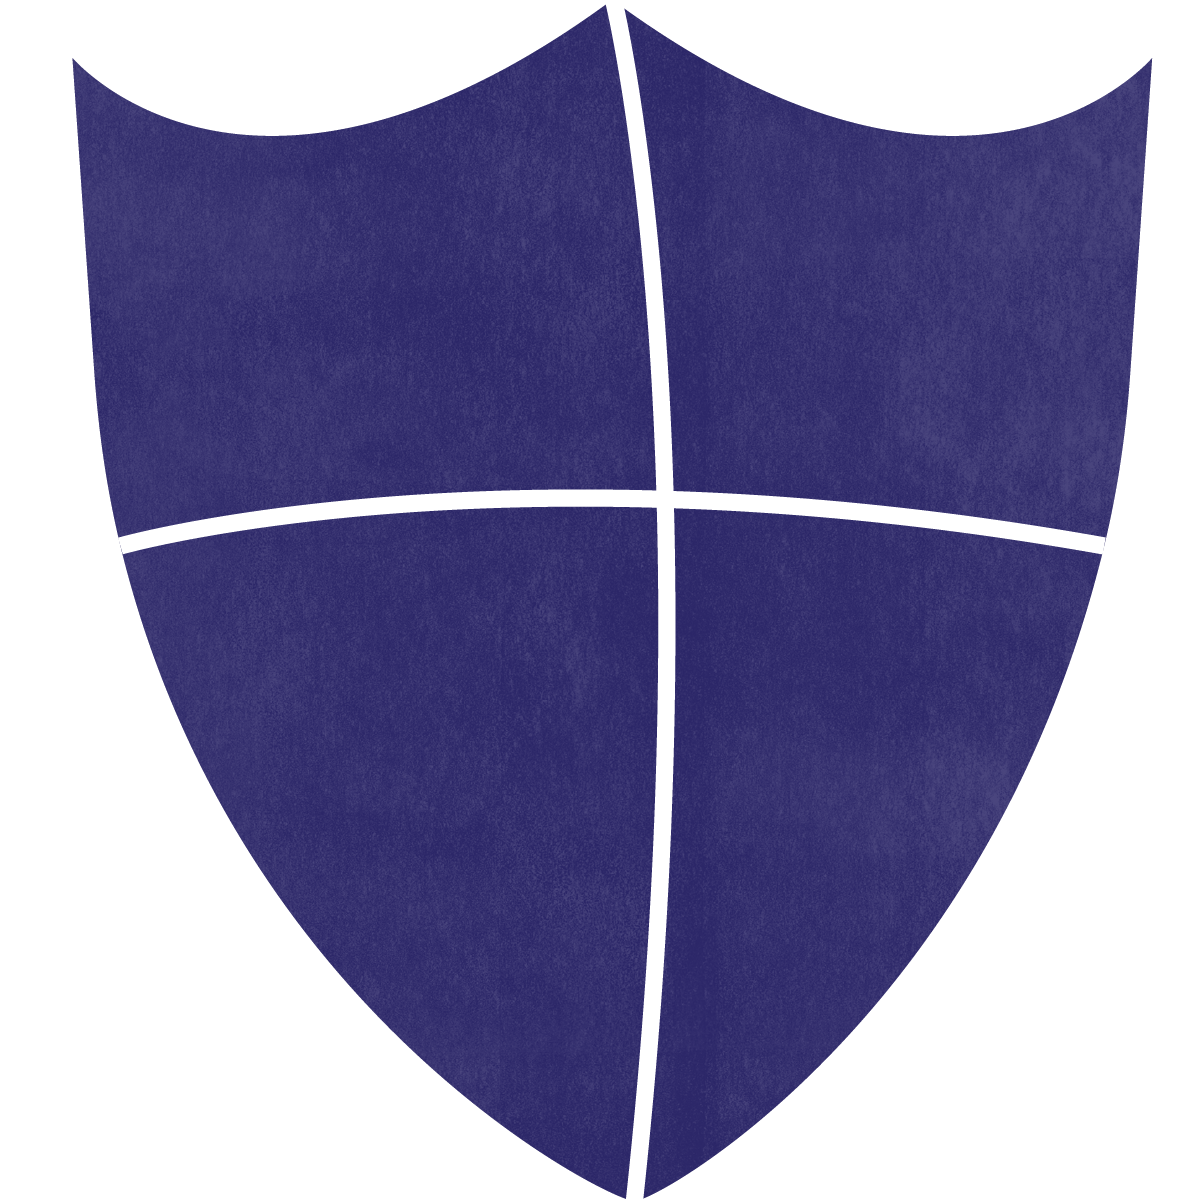 A purple shield showing integrity as a core value.